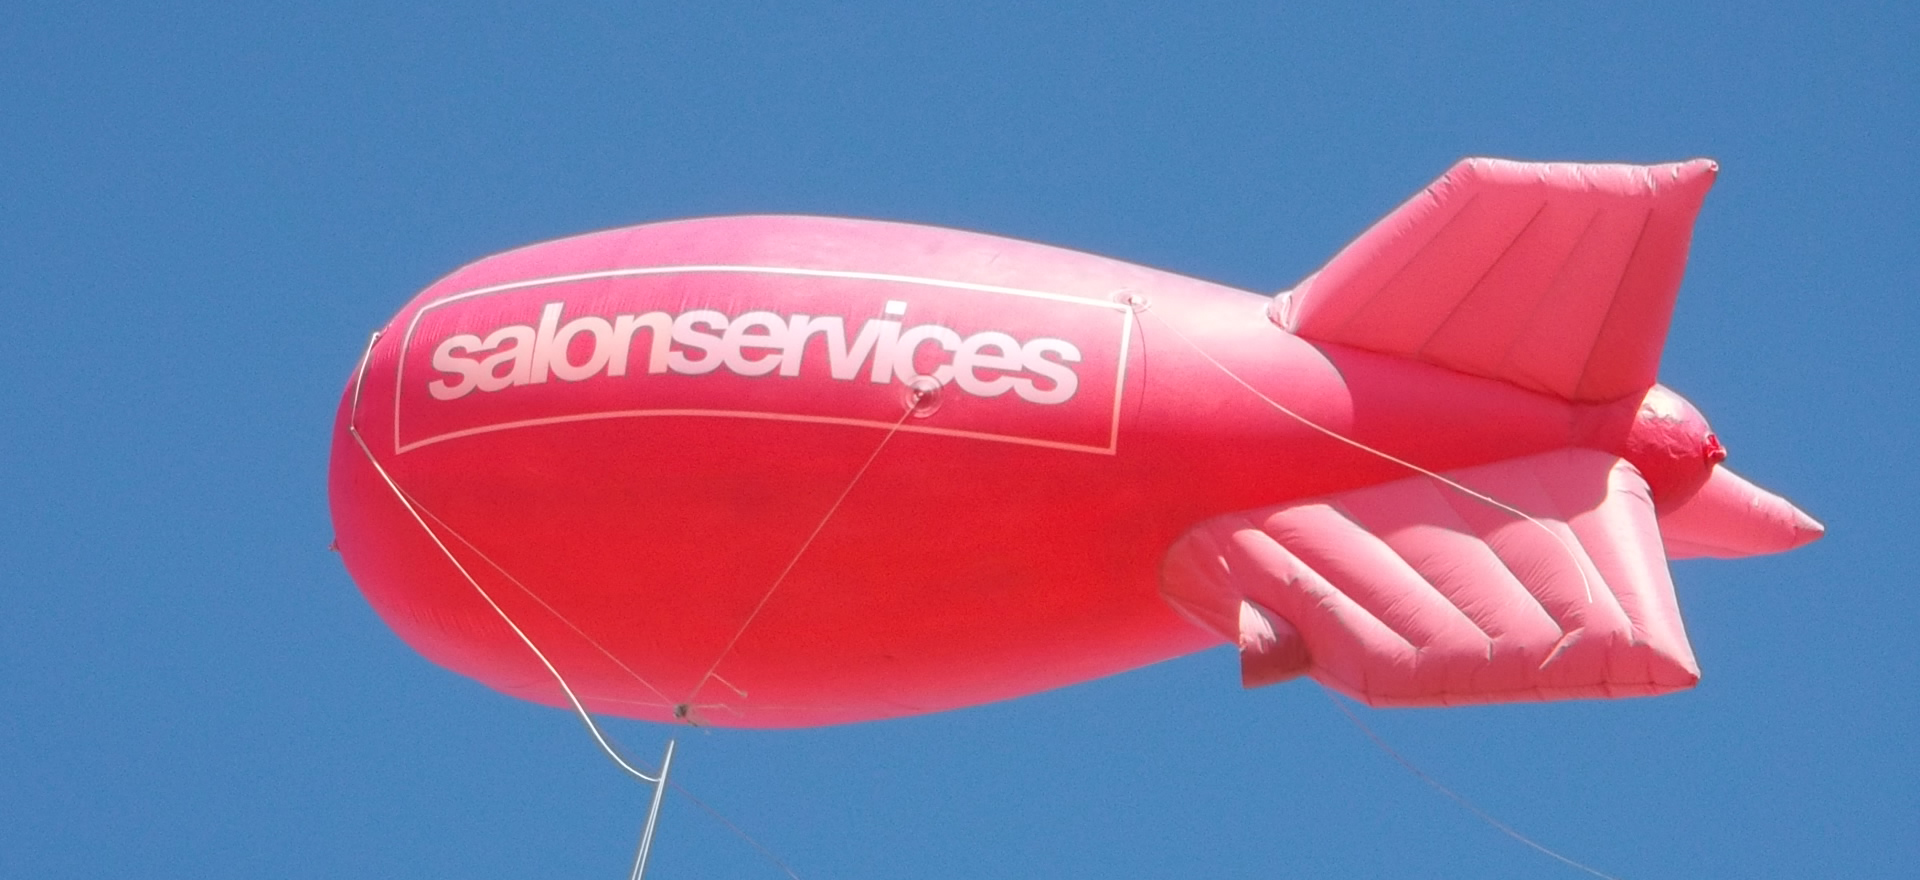 Salon Services advertising blimp in the sky